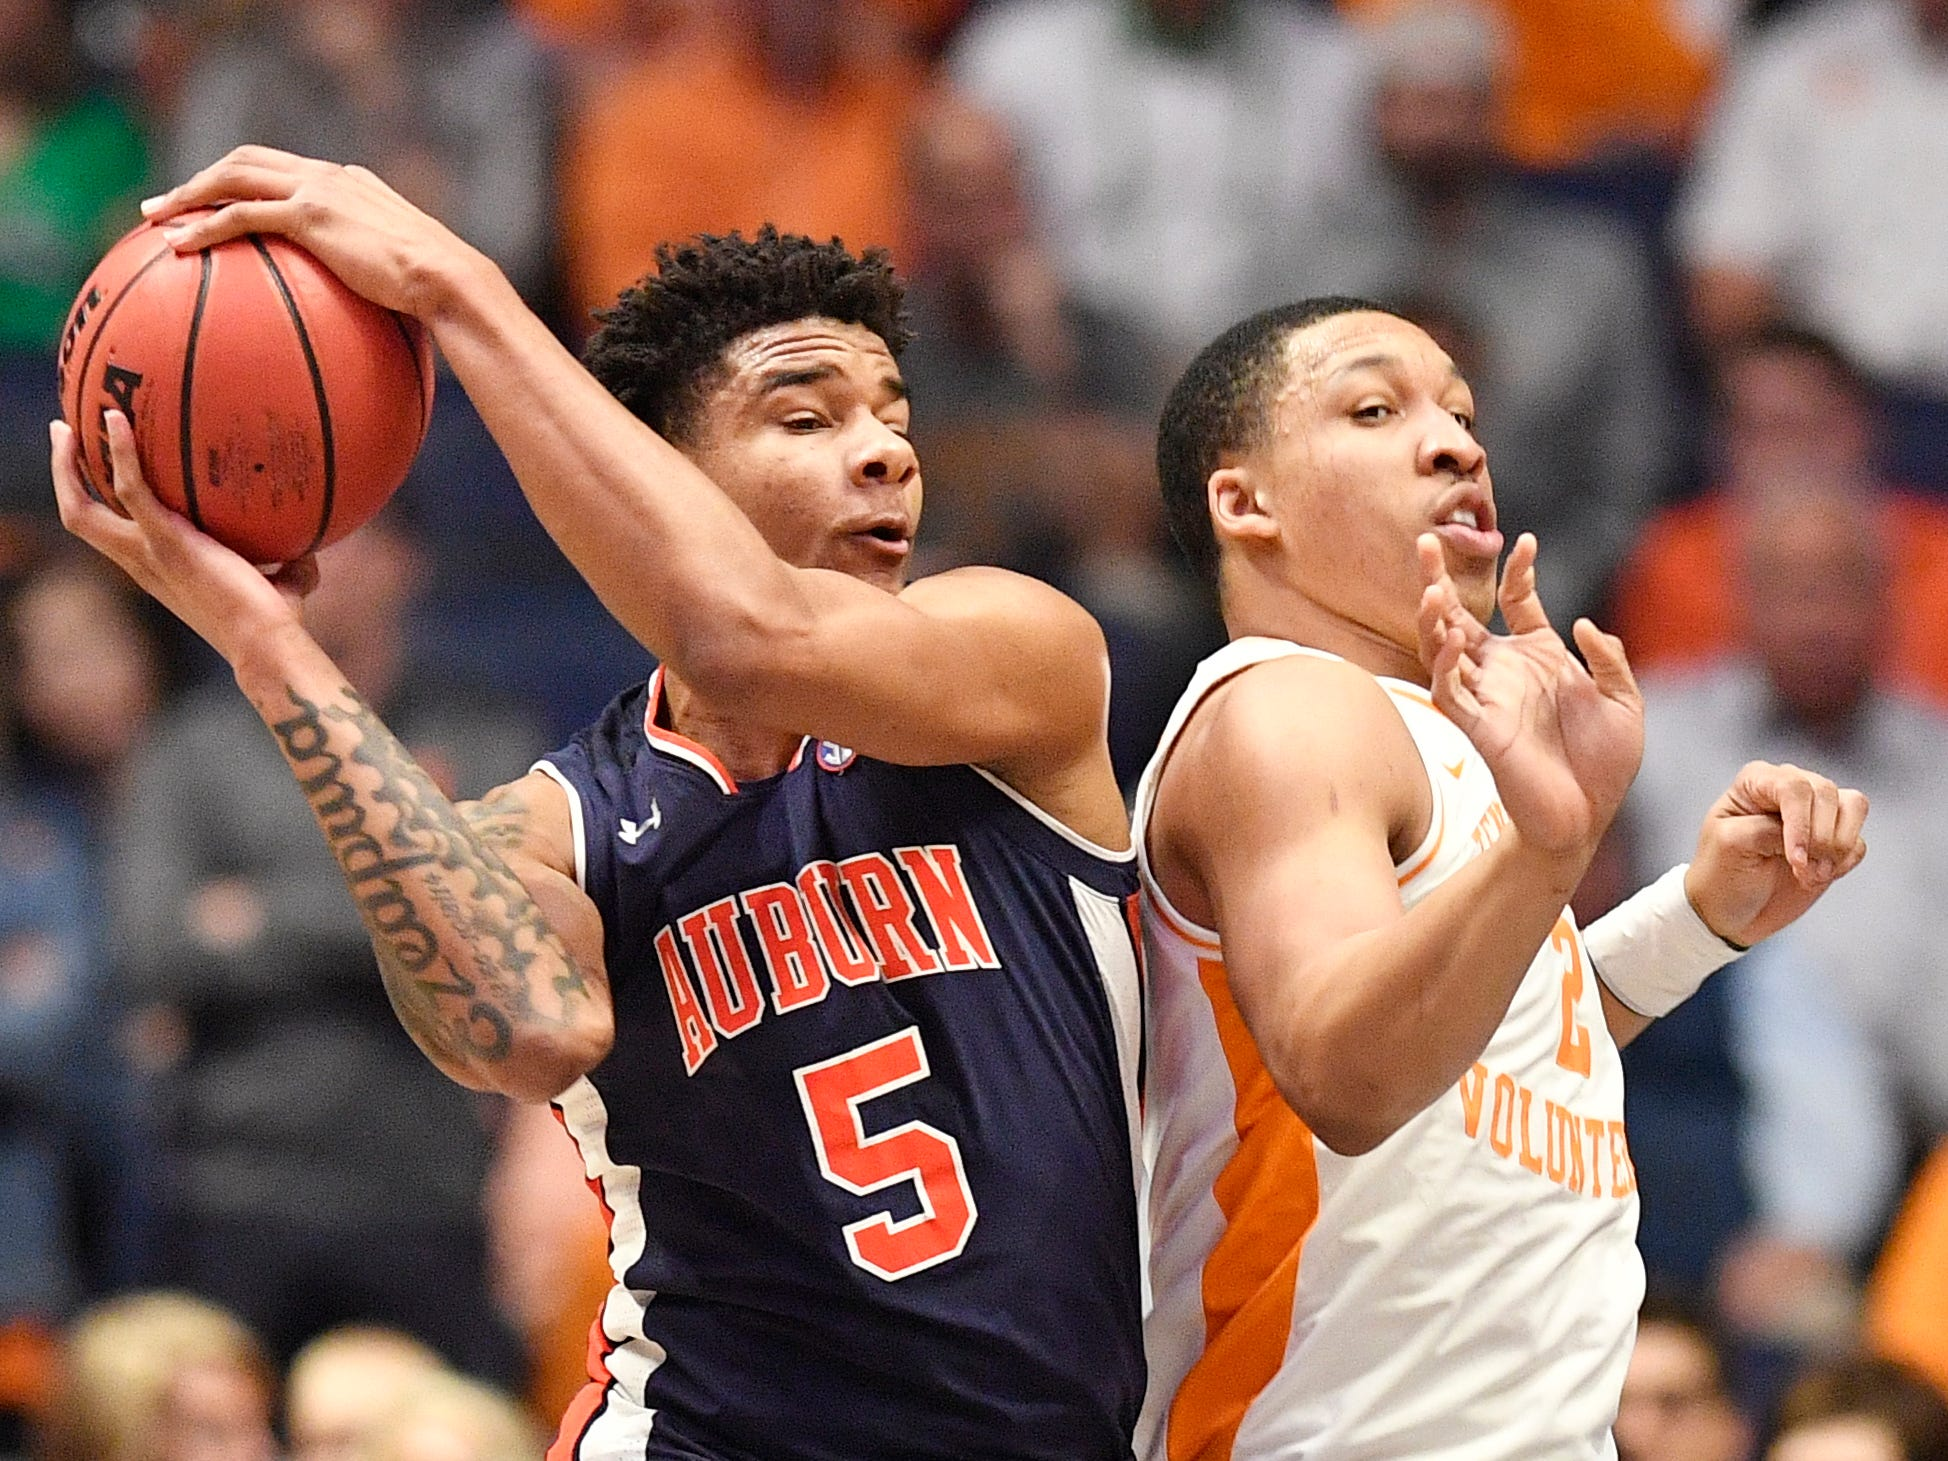 Auburn forward Chuma Okeke (5) grabs a rebound in front of Tennessee forward Grant Williams (2) during the first half of the SEC Men's Basketball Tournament championship game at Bridgestone Arena in Nashville, Tenn., Sunday, March 17, 2019.